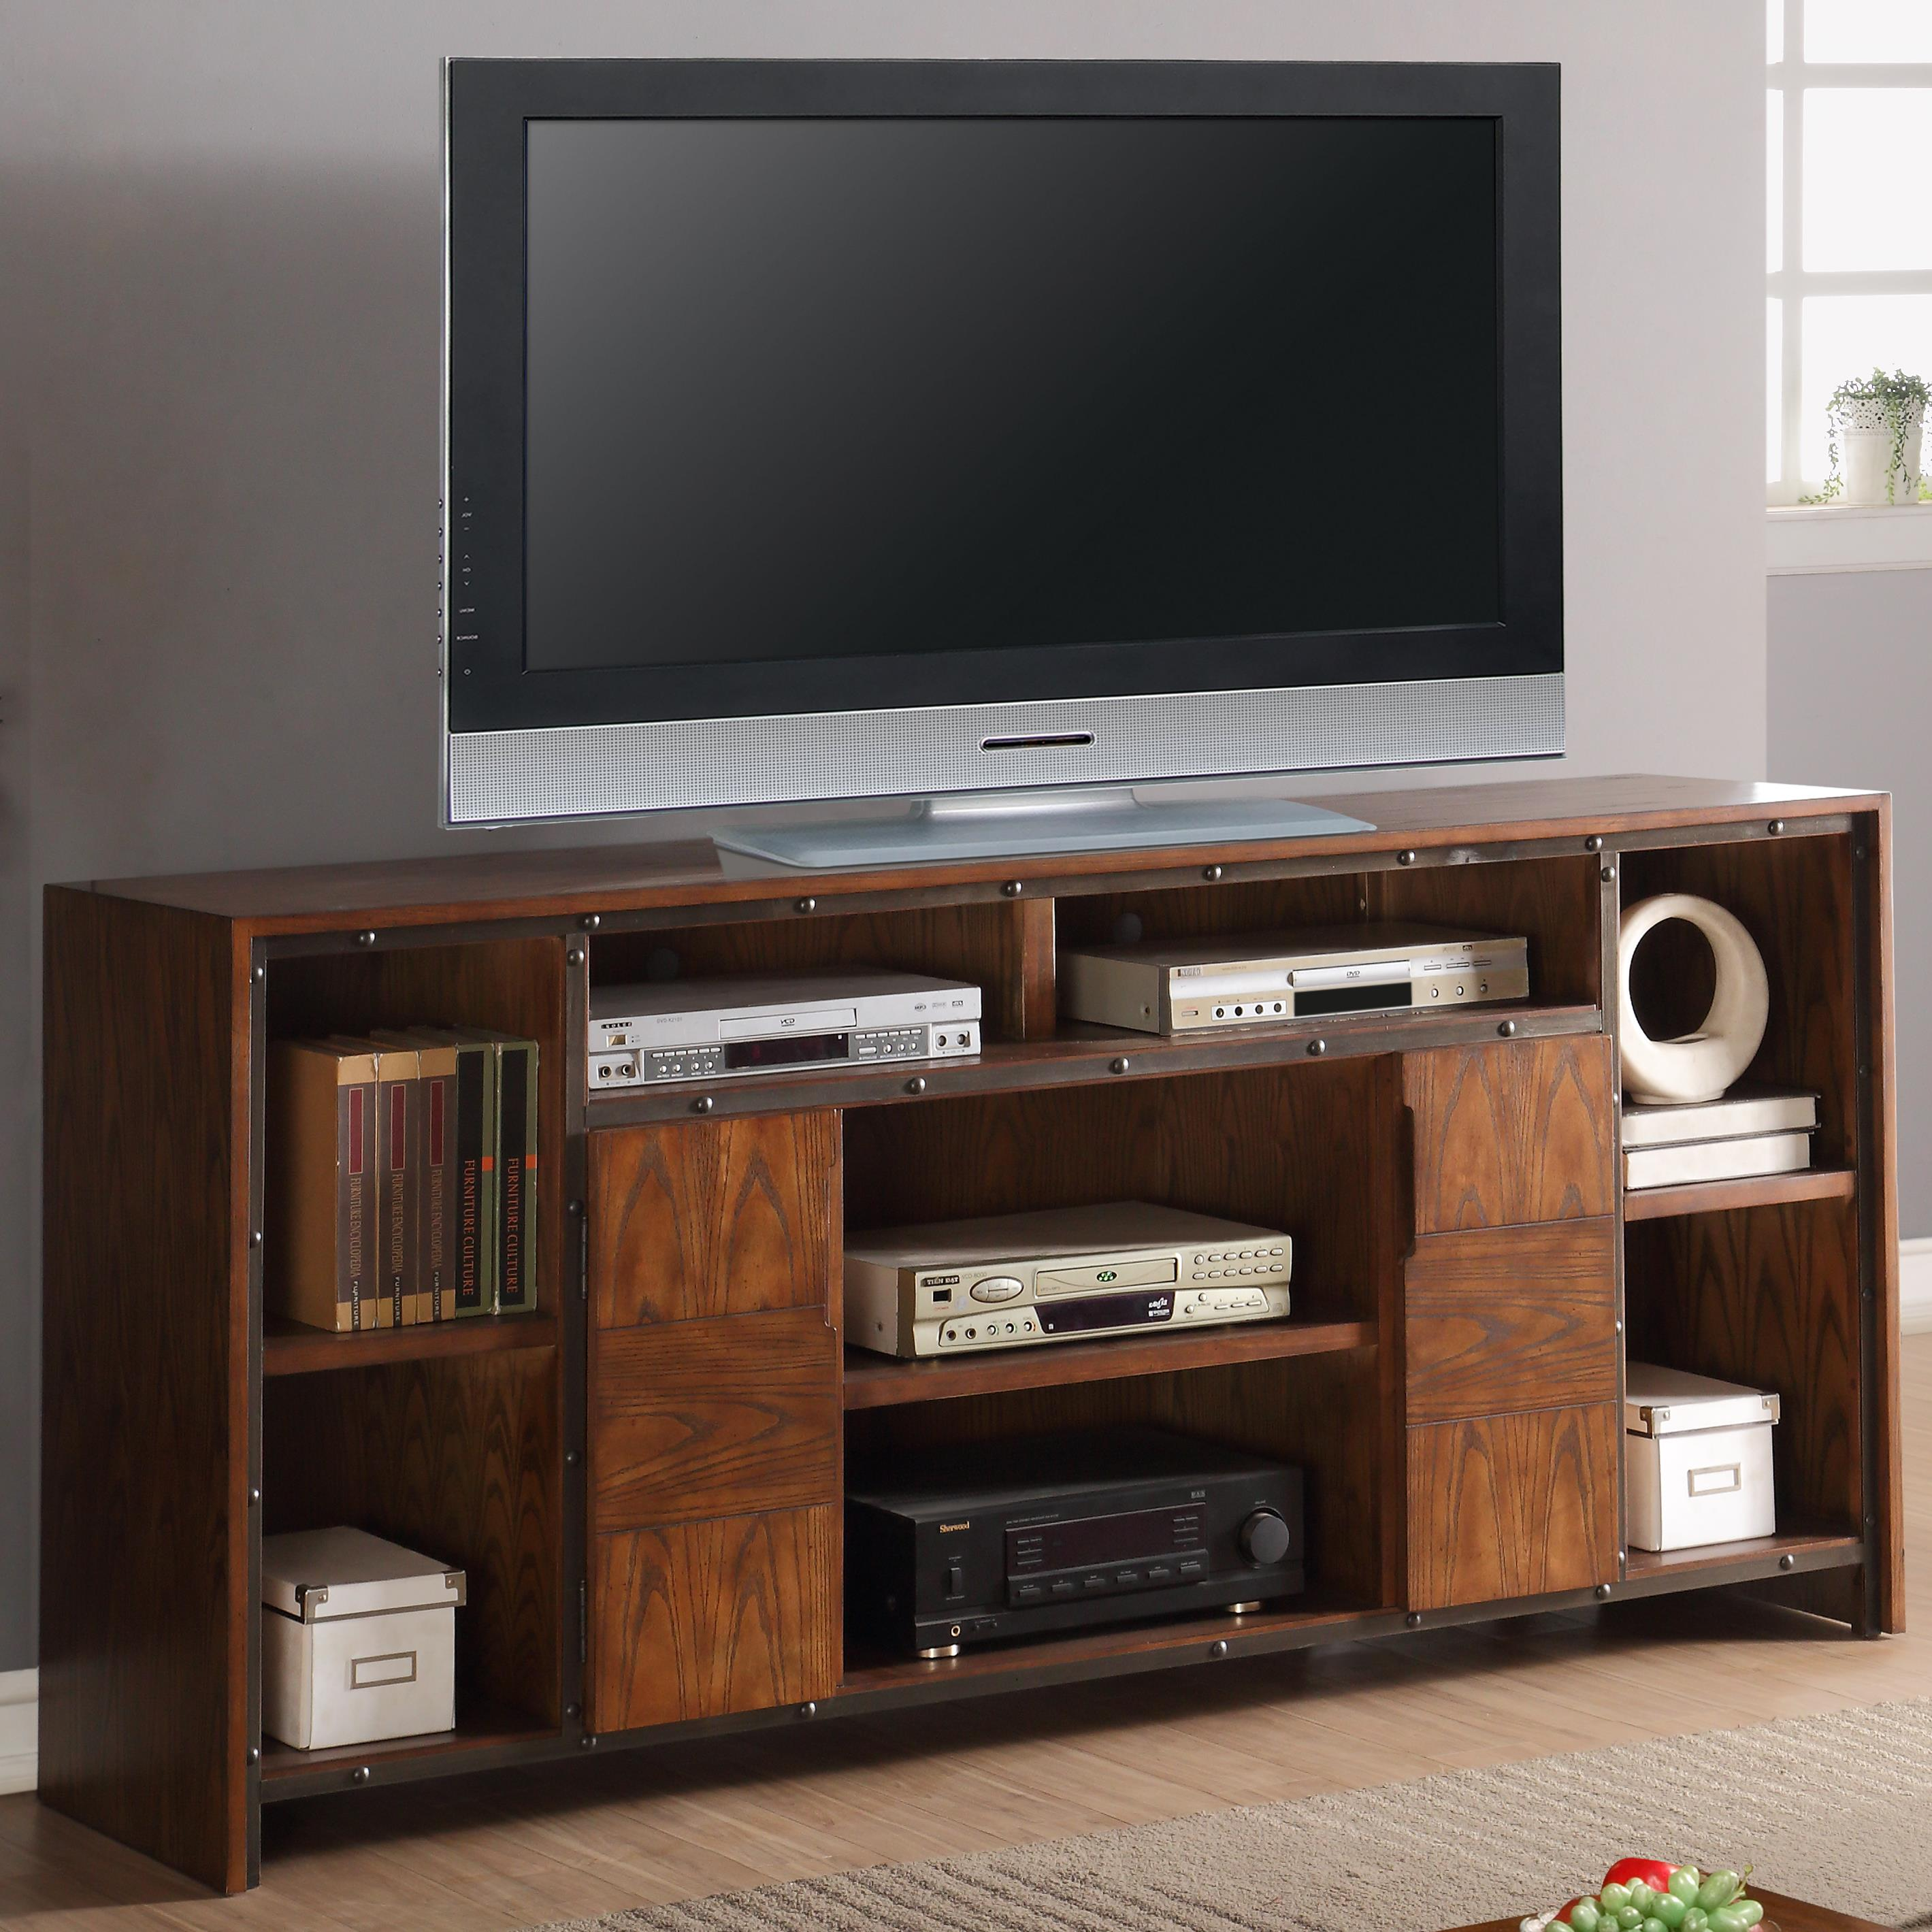 "Legends Furniture Crossgrain Collection 74"" TV Console - Item Number: ZCGN-1474"